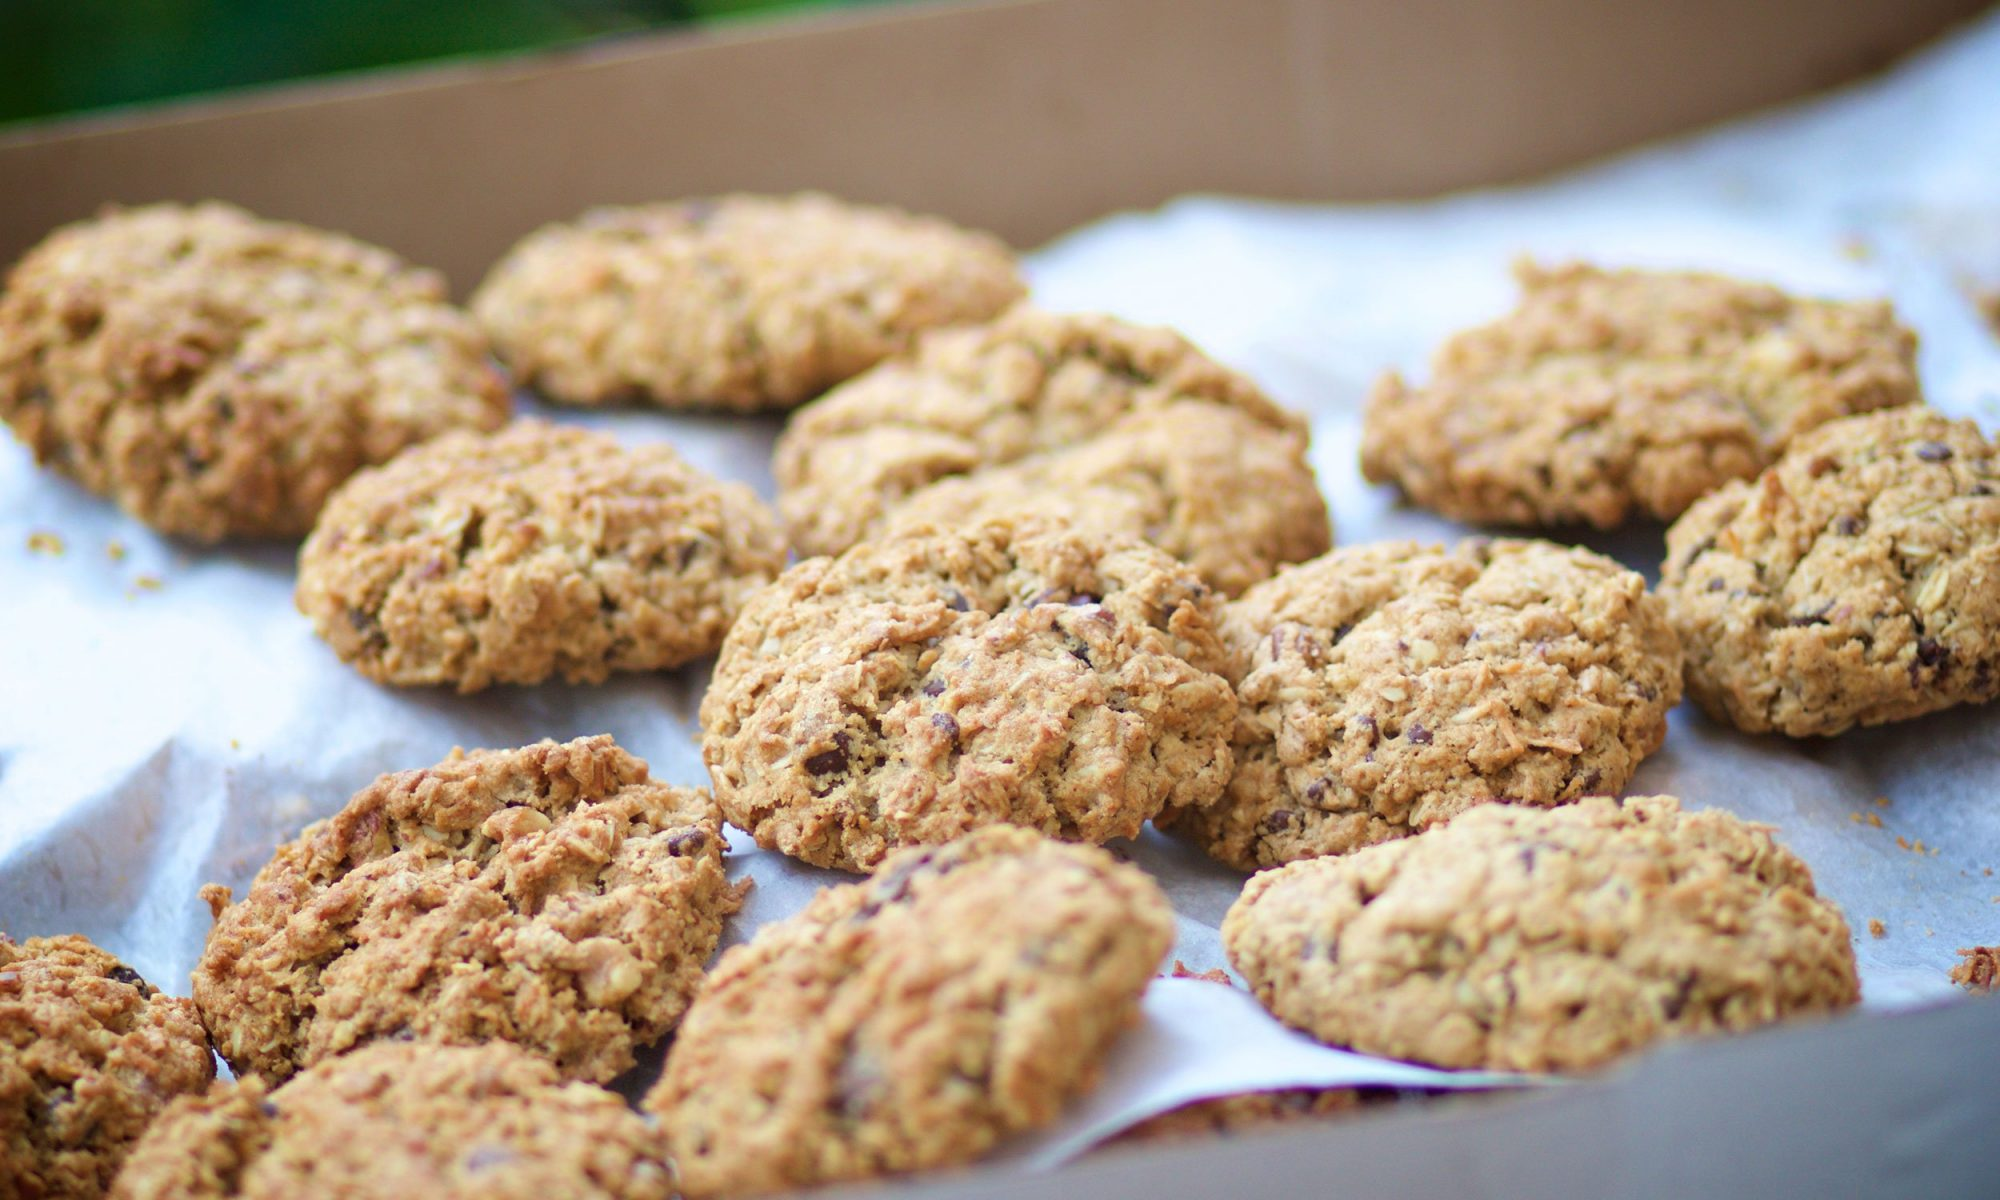 leftover oatmeal cookies